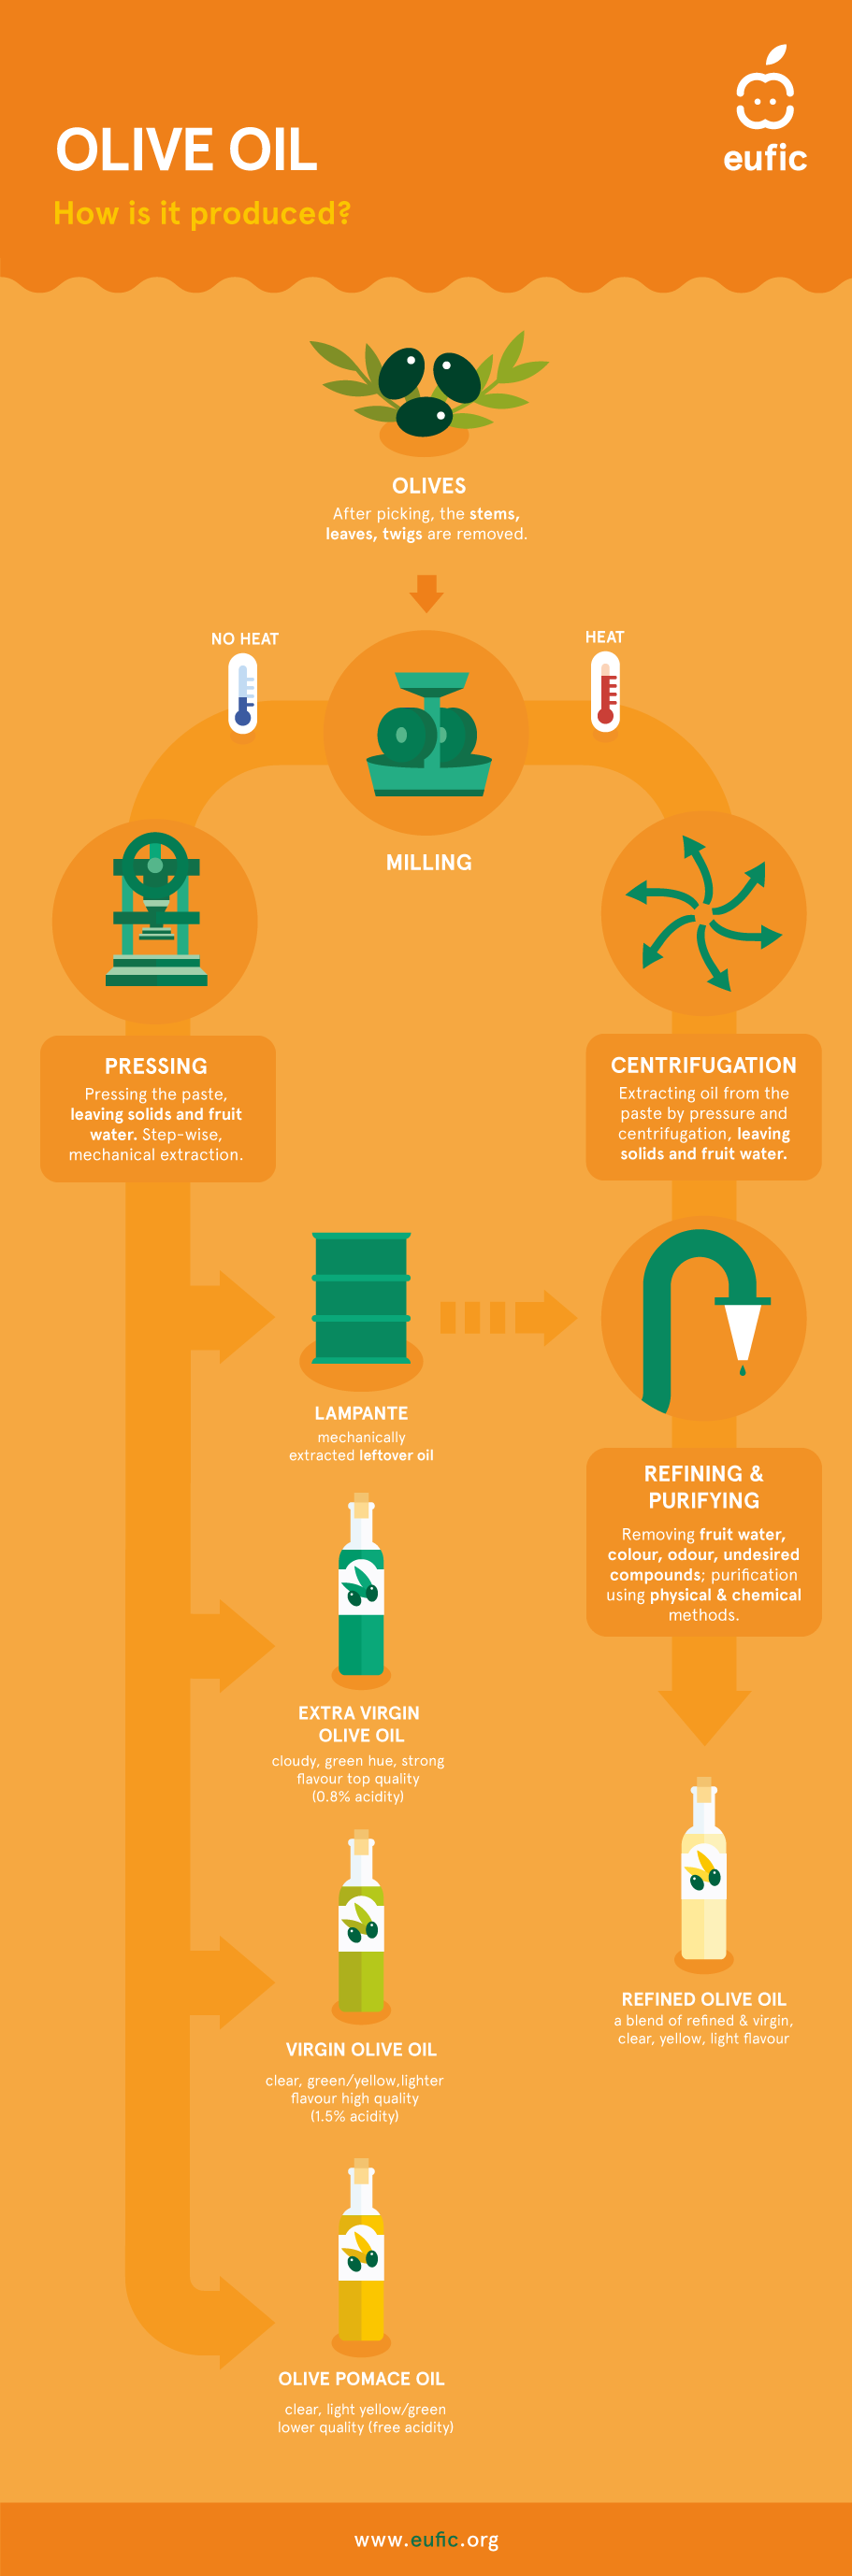 Olive Oil Infographic: (EUFIC)